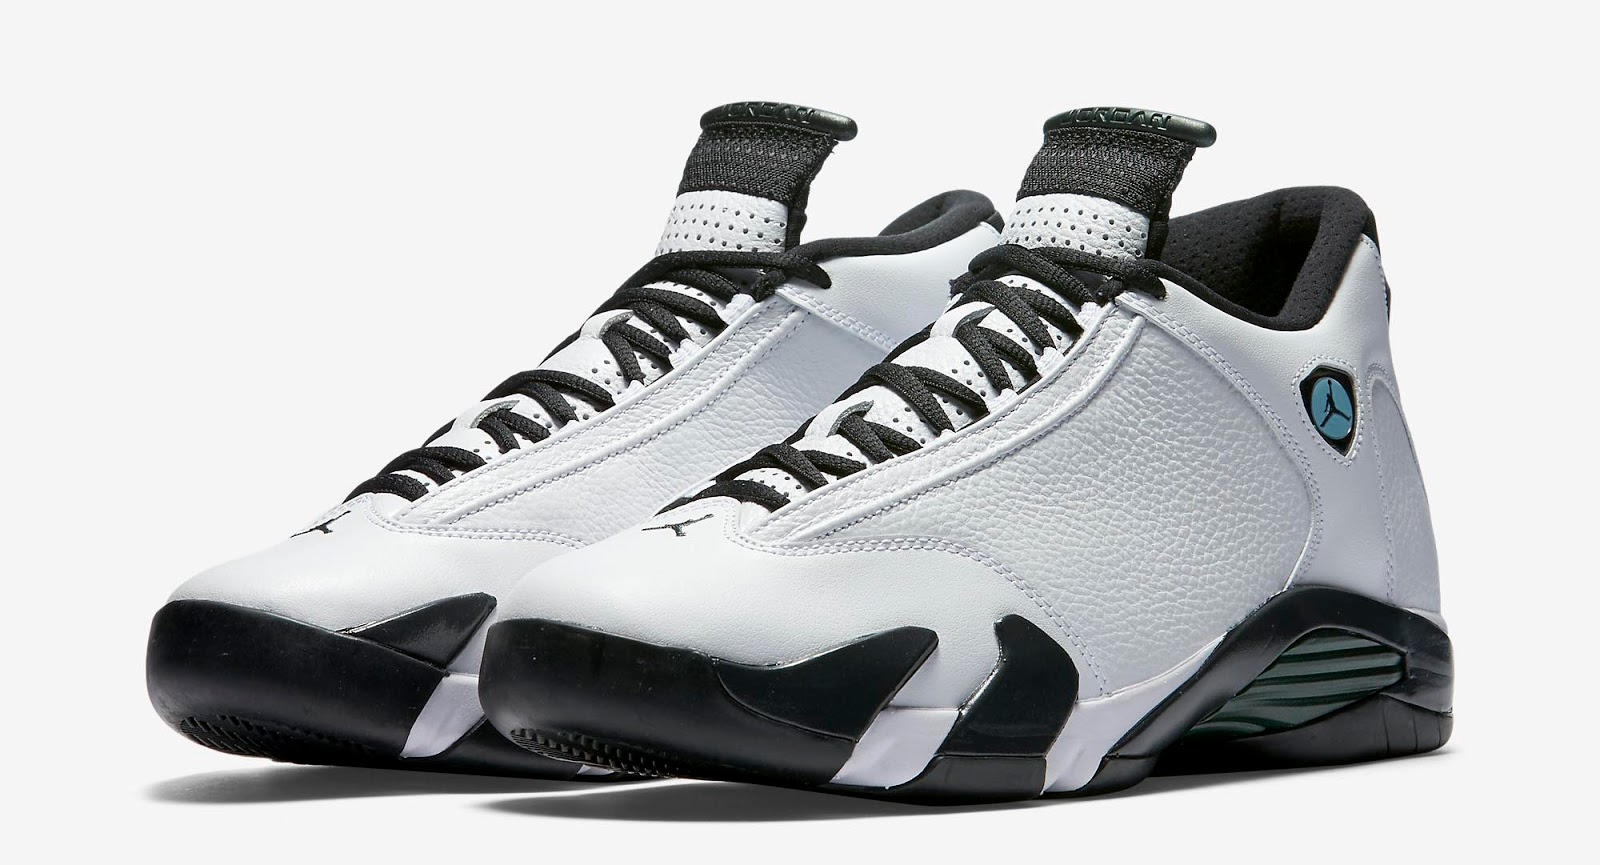 newest 7da37 dd6c3 Air Jordan 14 Retro White Black-Oxidized Green-Legend Blue Release Reminder